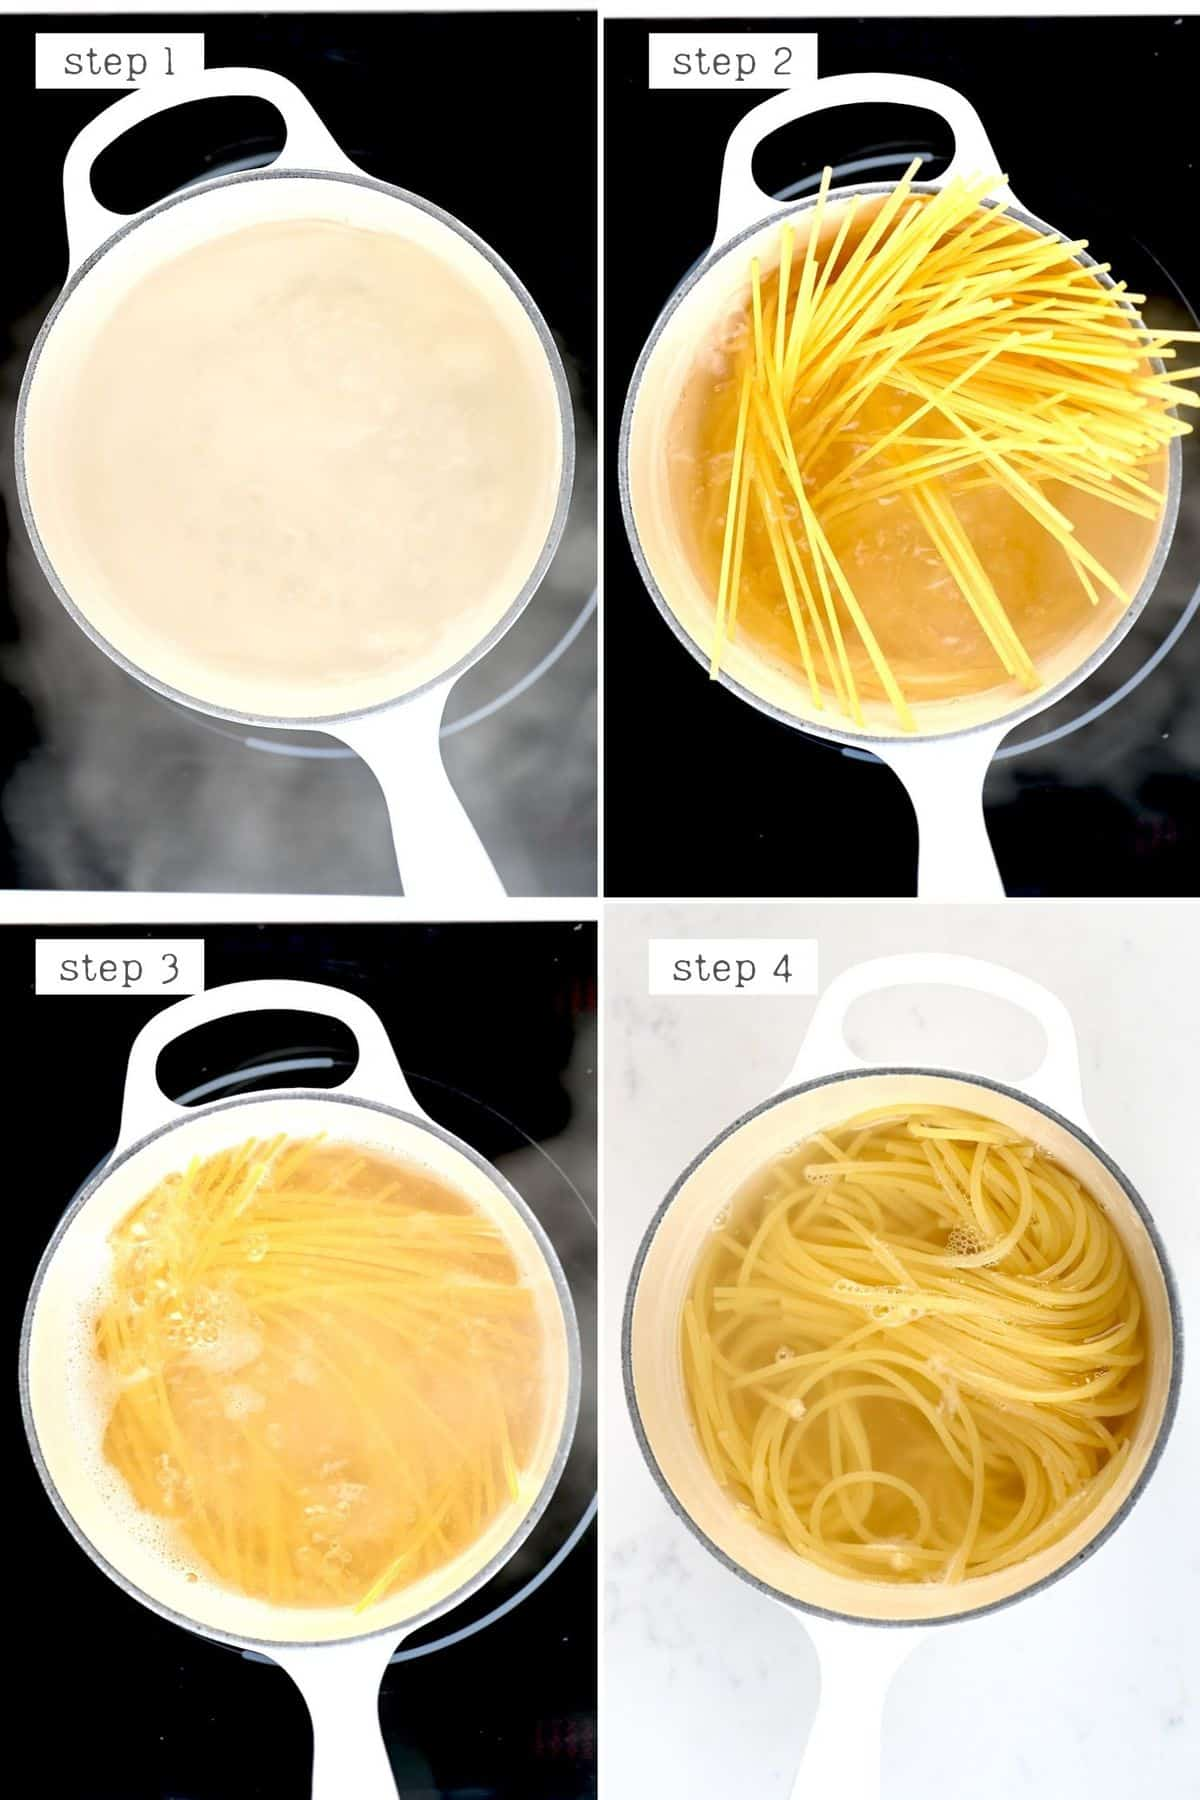 Steps for cooking pasta